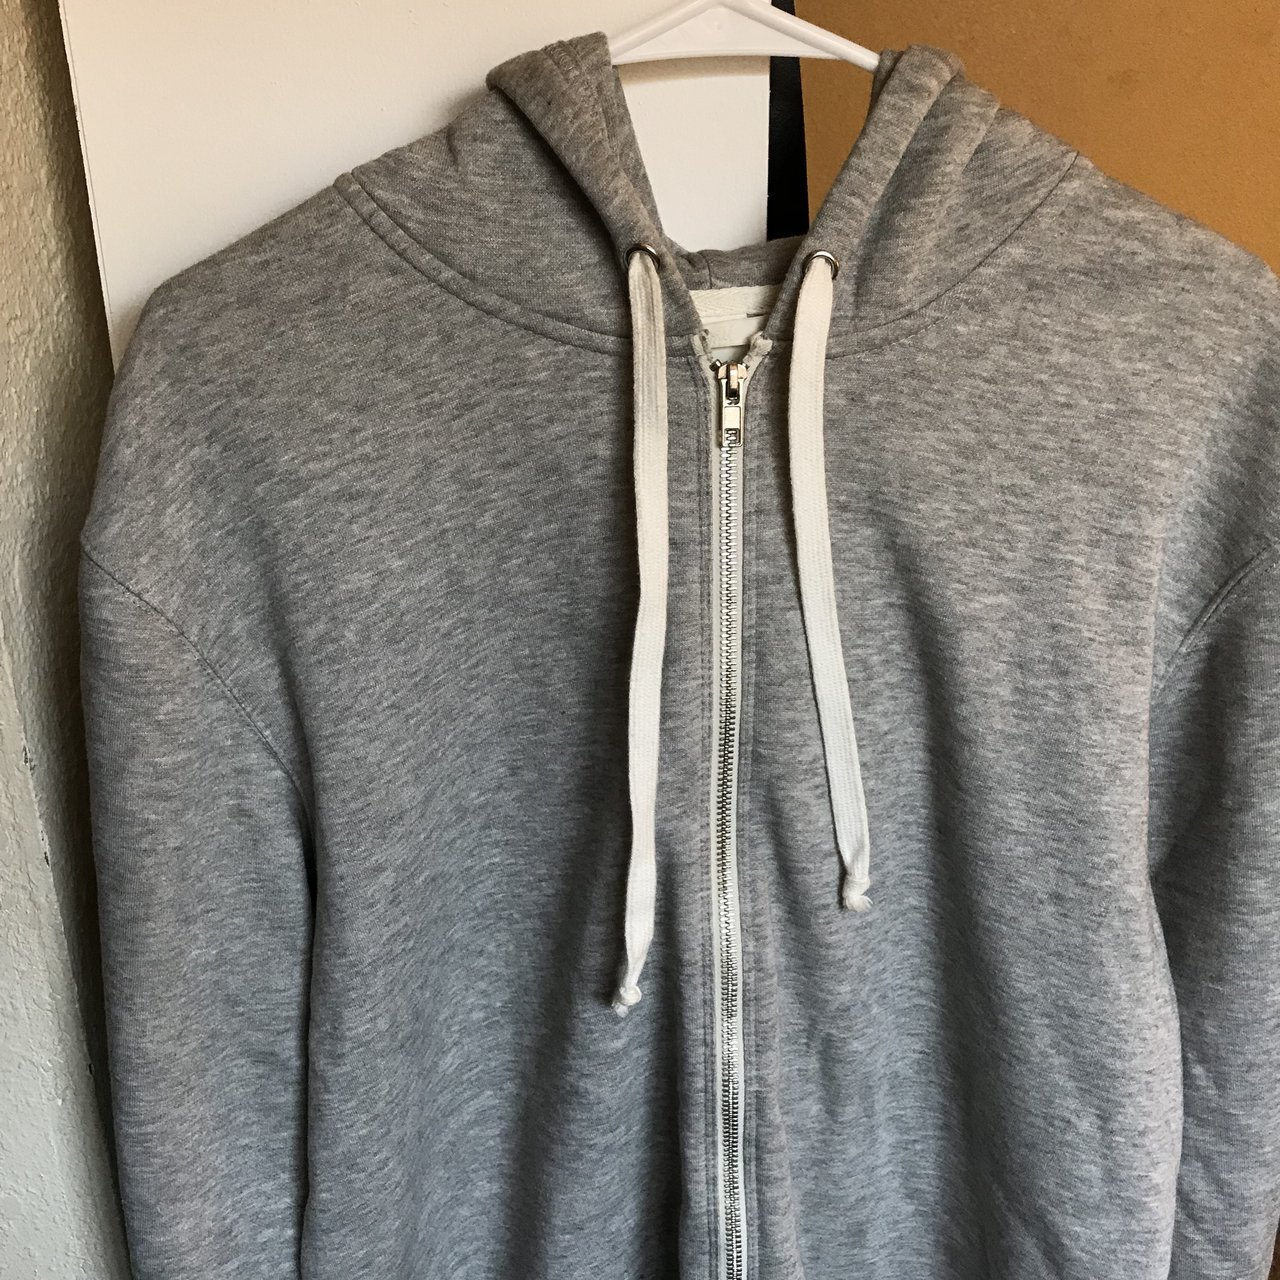 c13c5b4fca8e Medium-grey H&M hoodie for ladies, though it could also be a - Depop